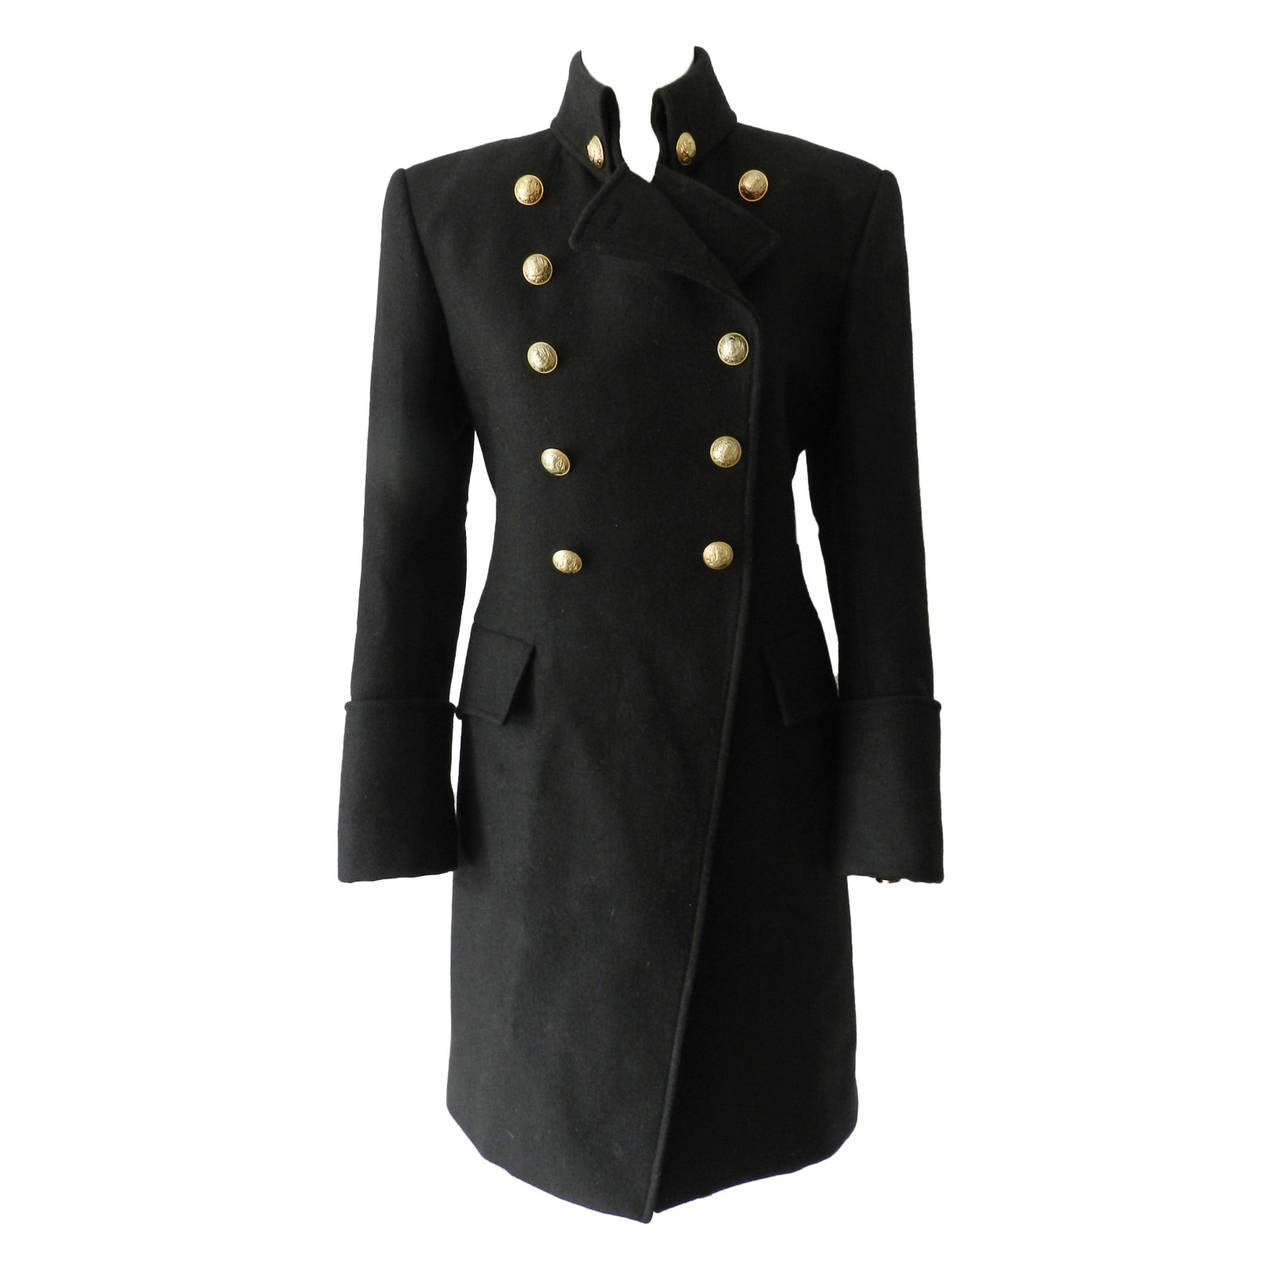 Balmain Black Wool Military Coat with Gold Buttons